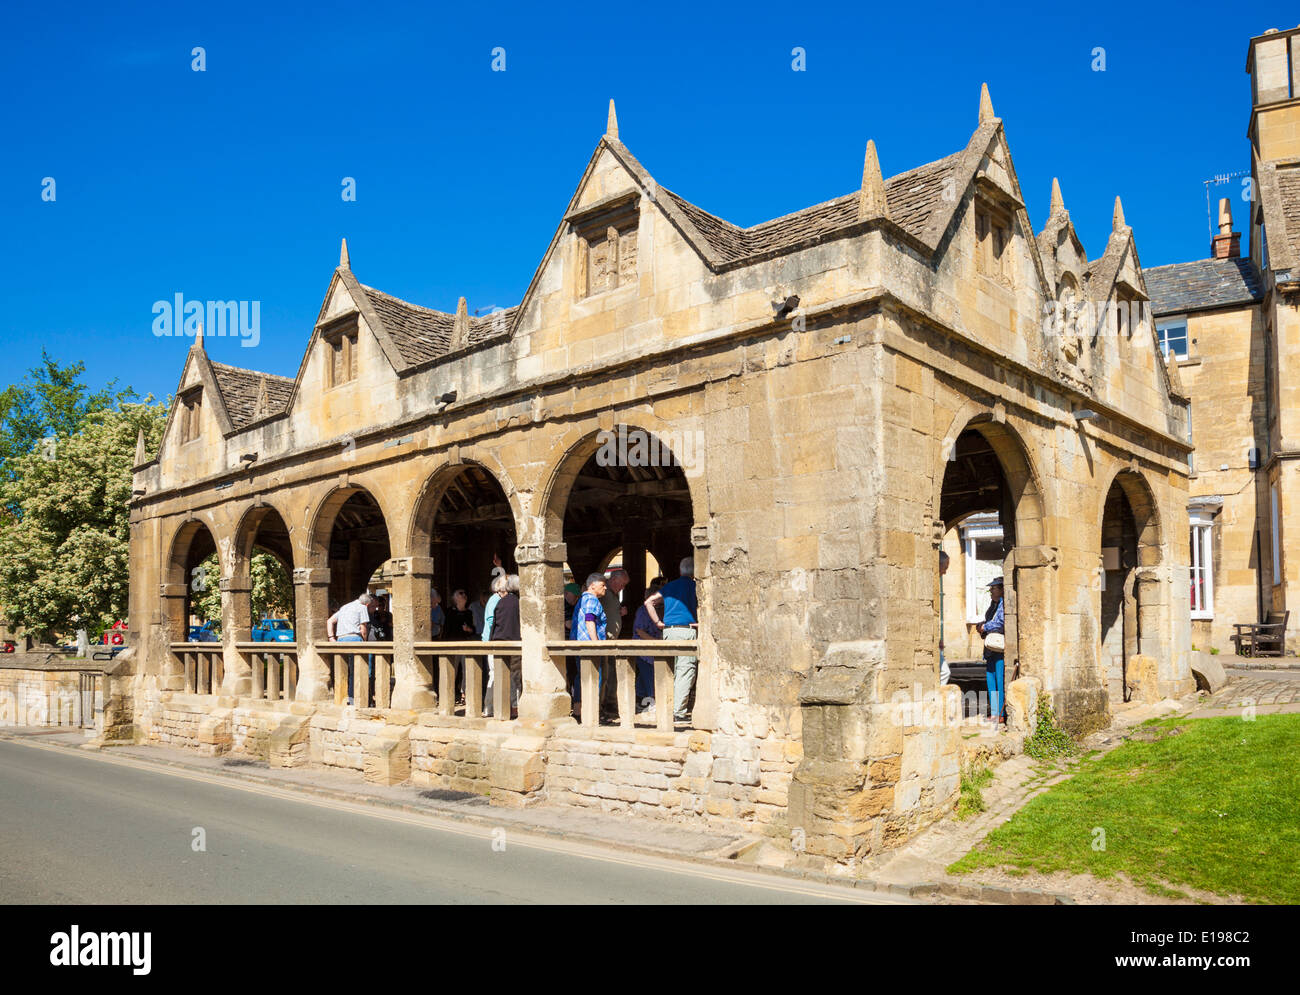 Chipping Campden Market Hall construit 1646 High Street Chipping Campden les Cotswolds Gloucestershire England UK EU Europe Photo Stock